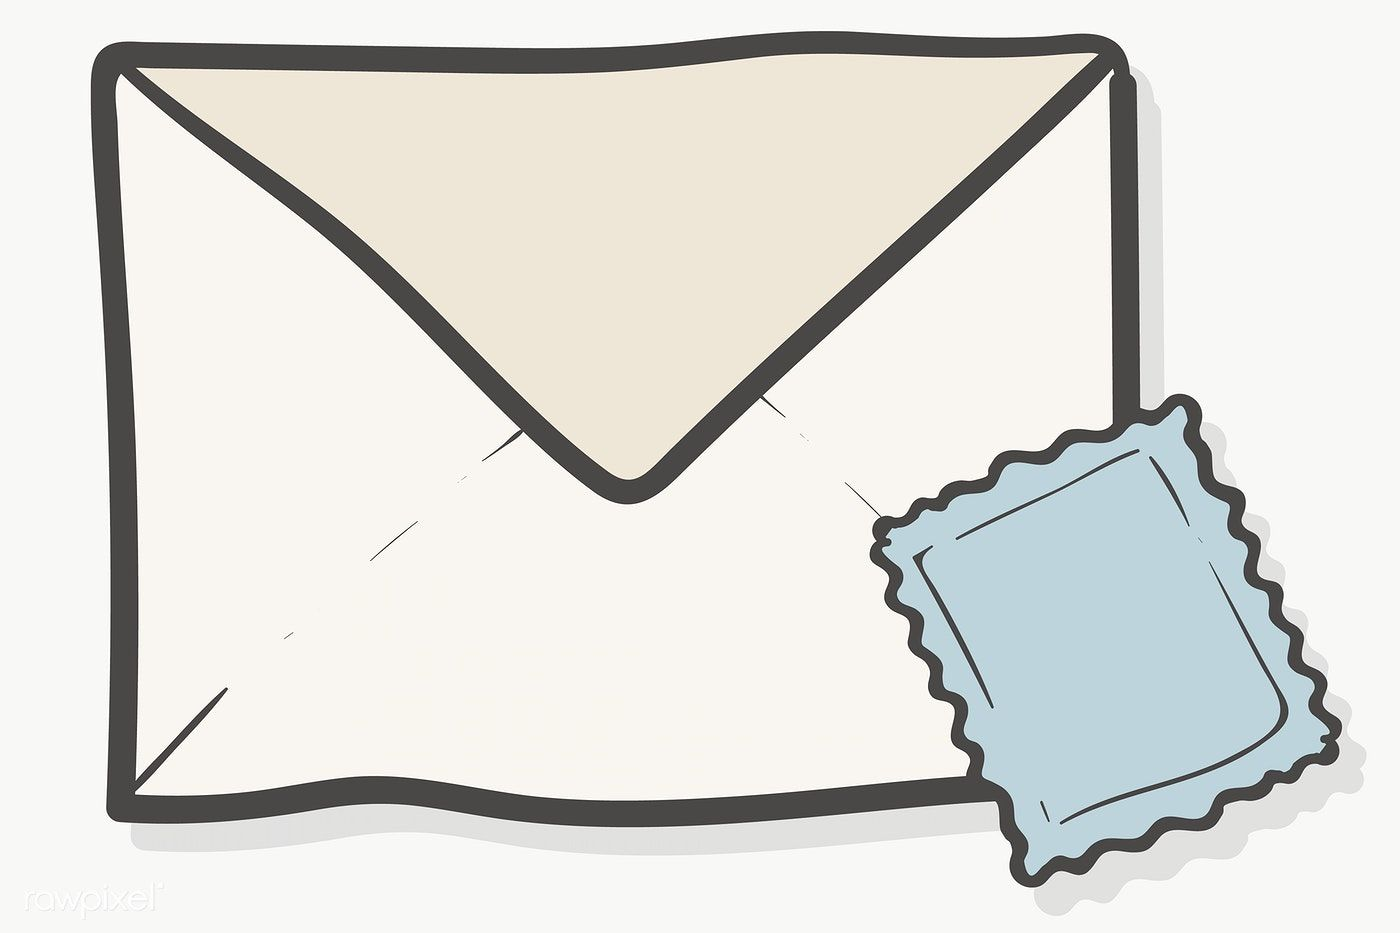 Envelope And Stamp Doodle Template Transparent Png Free Image By Rawpixel Com Chayanit Doodles Floral Doodle Paper Background Texture